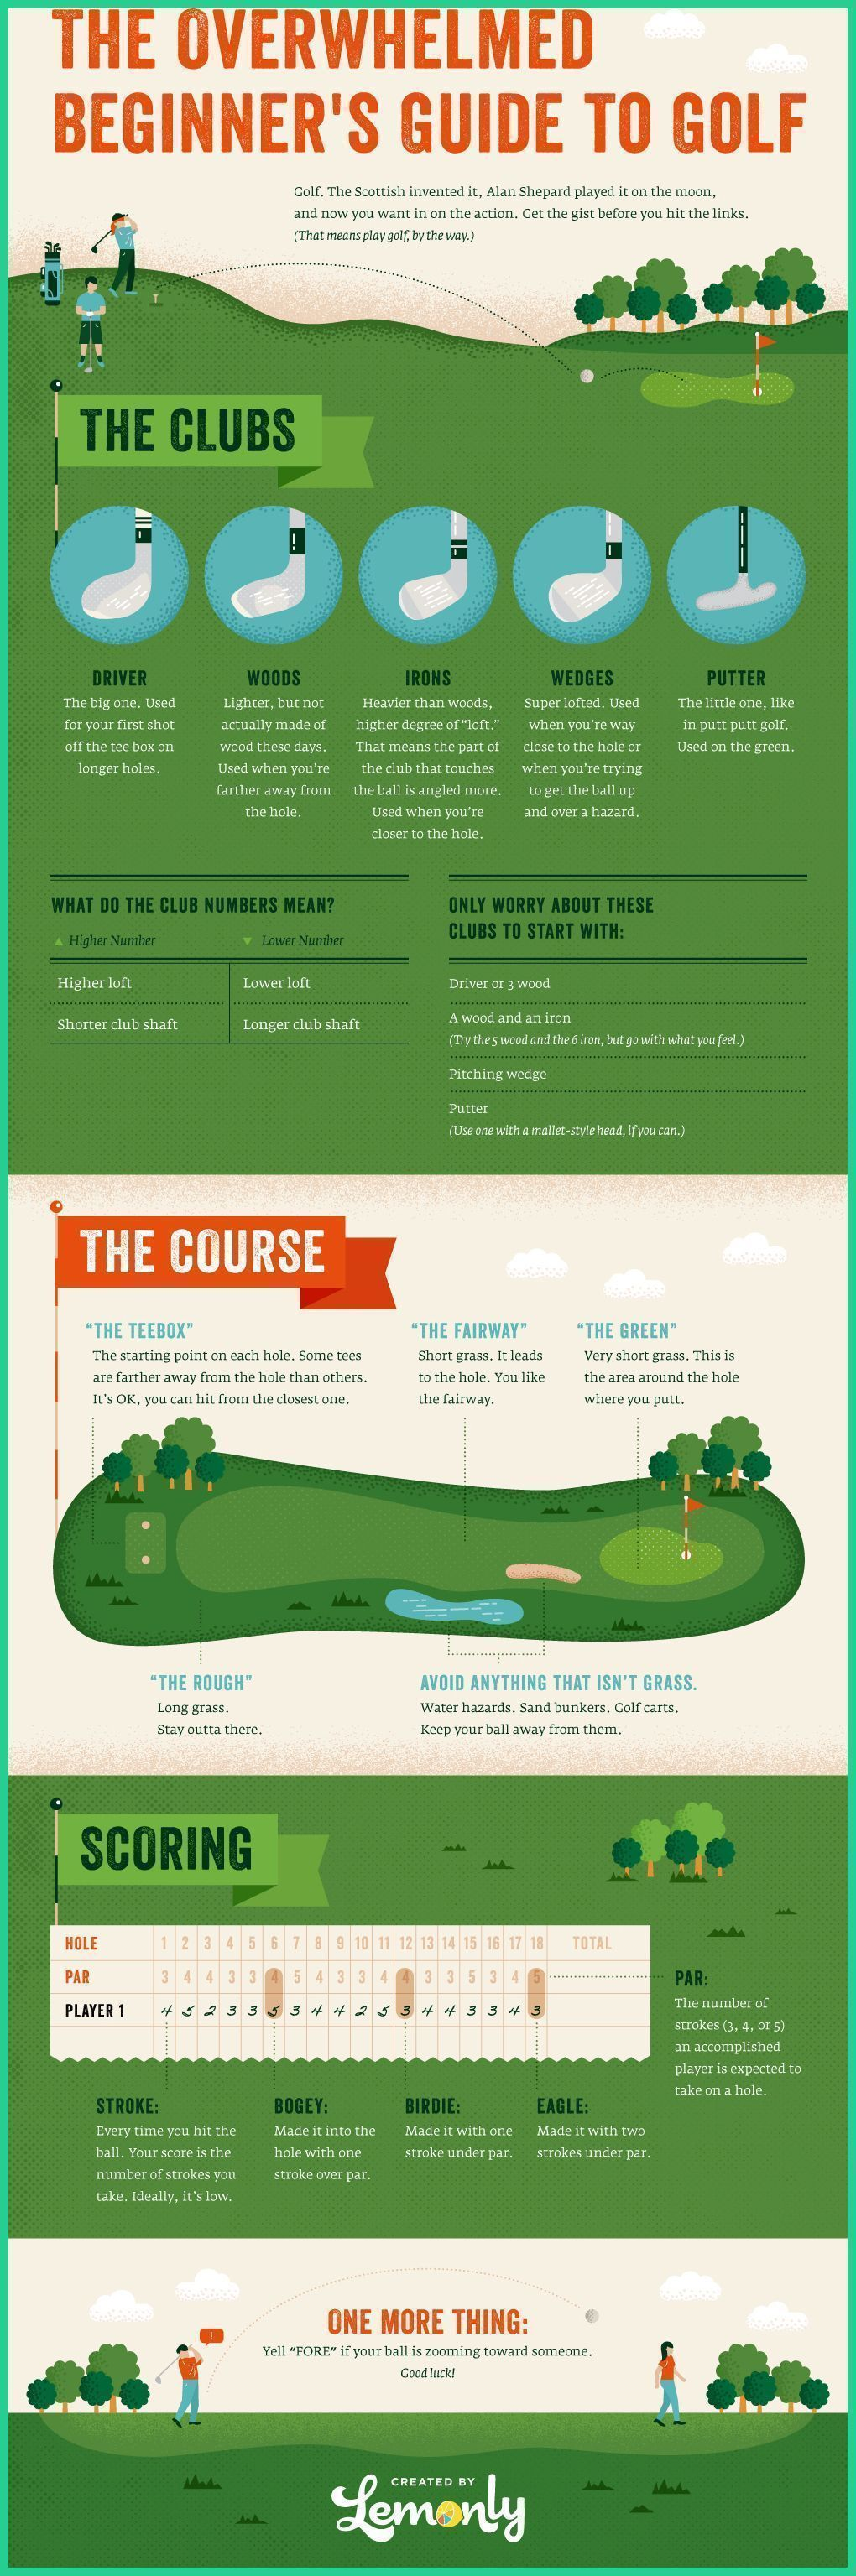 The Stress Free Golf Swing | Pinterest | Golf clubs, Golf and Distance